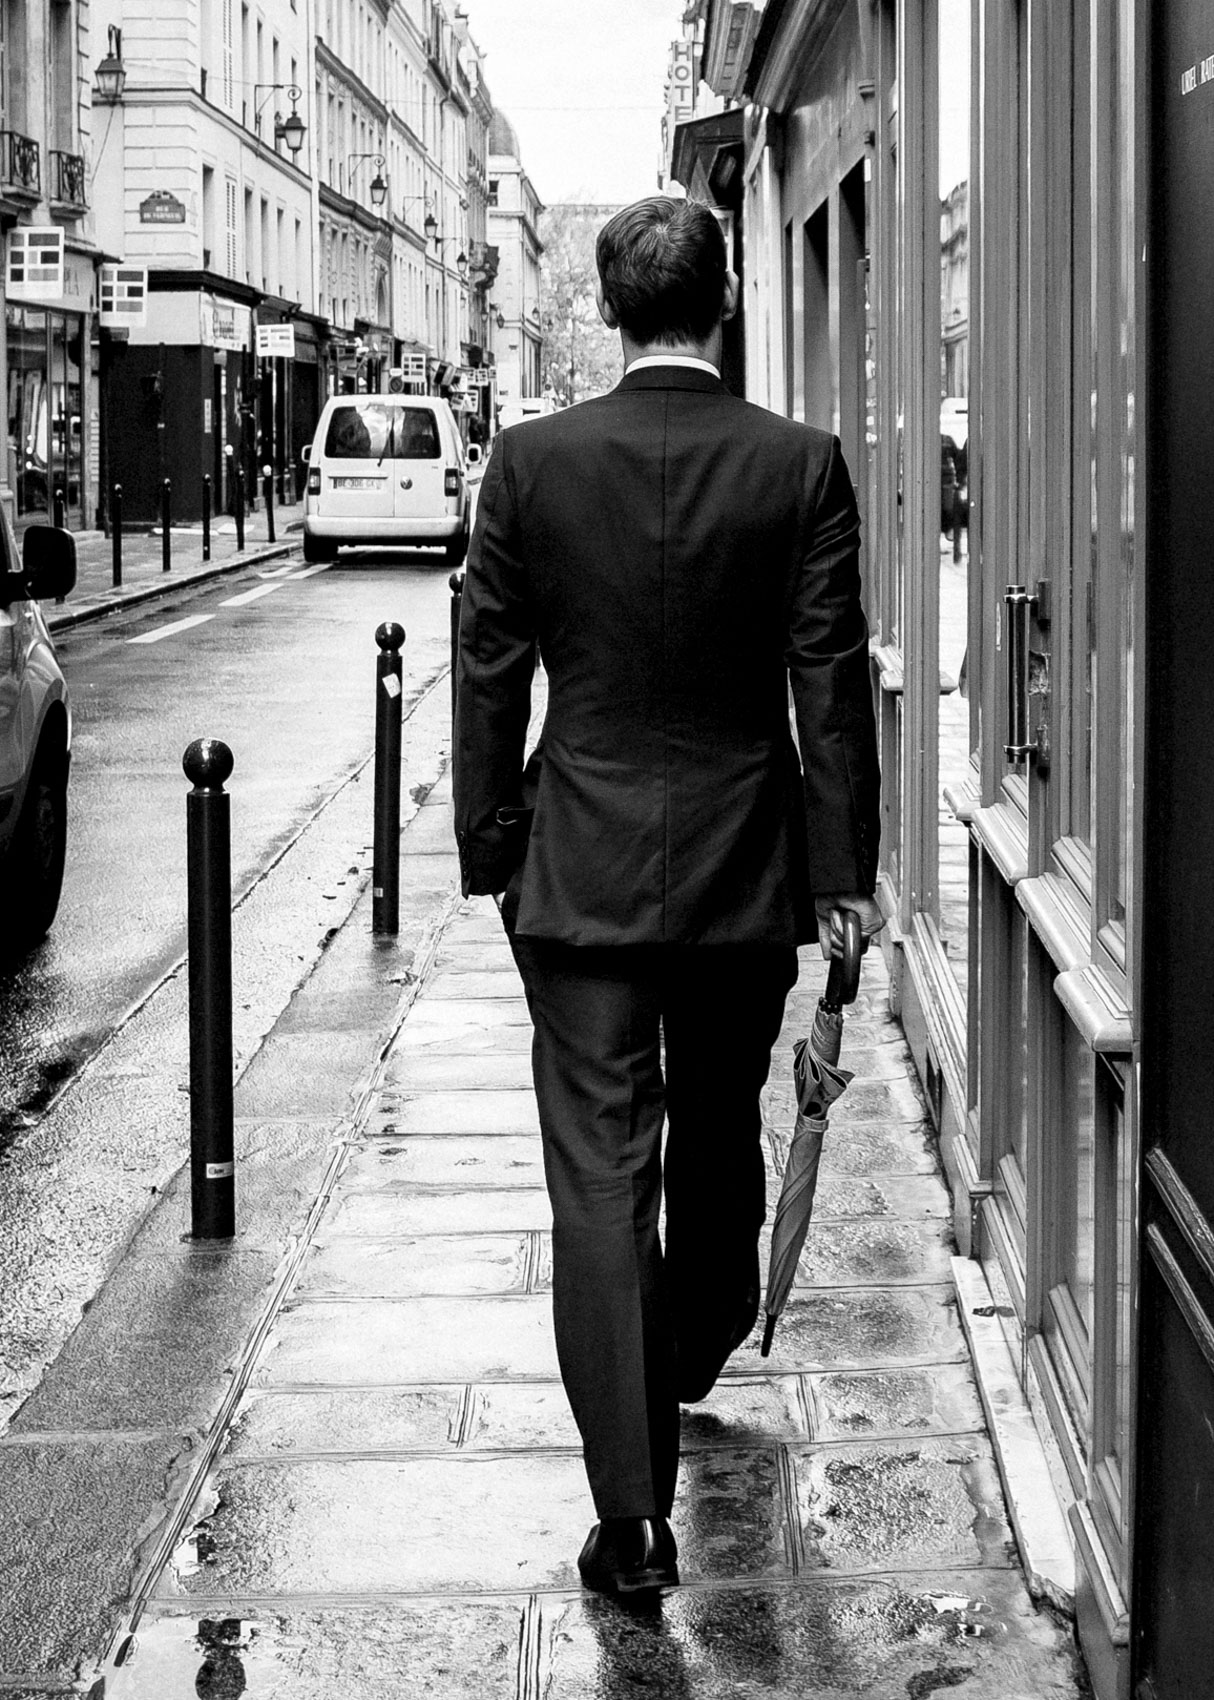 Los Angeles Street Photographer - Man walking streets of Paris by Ray Kachatorian